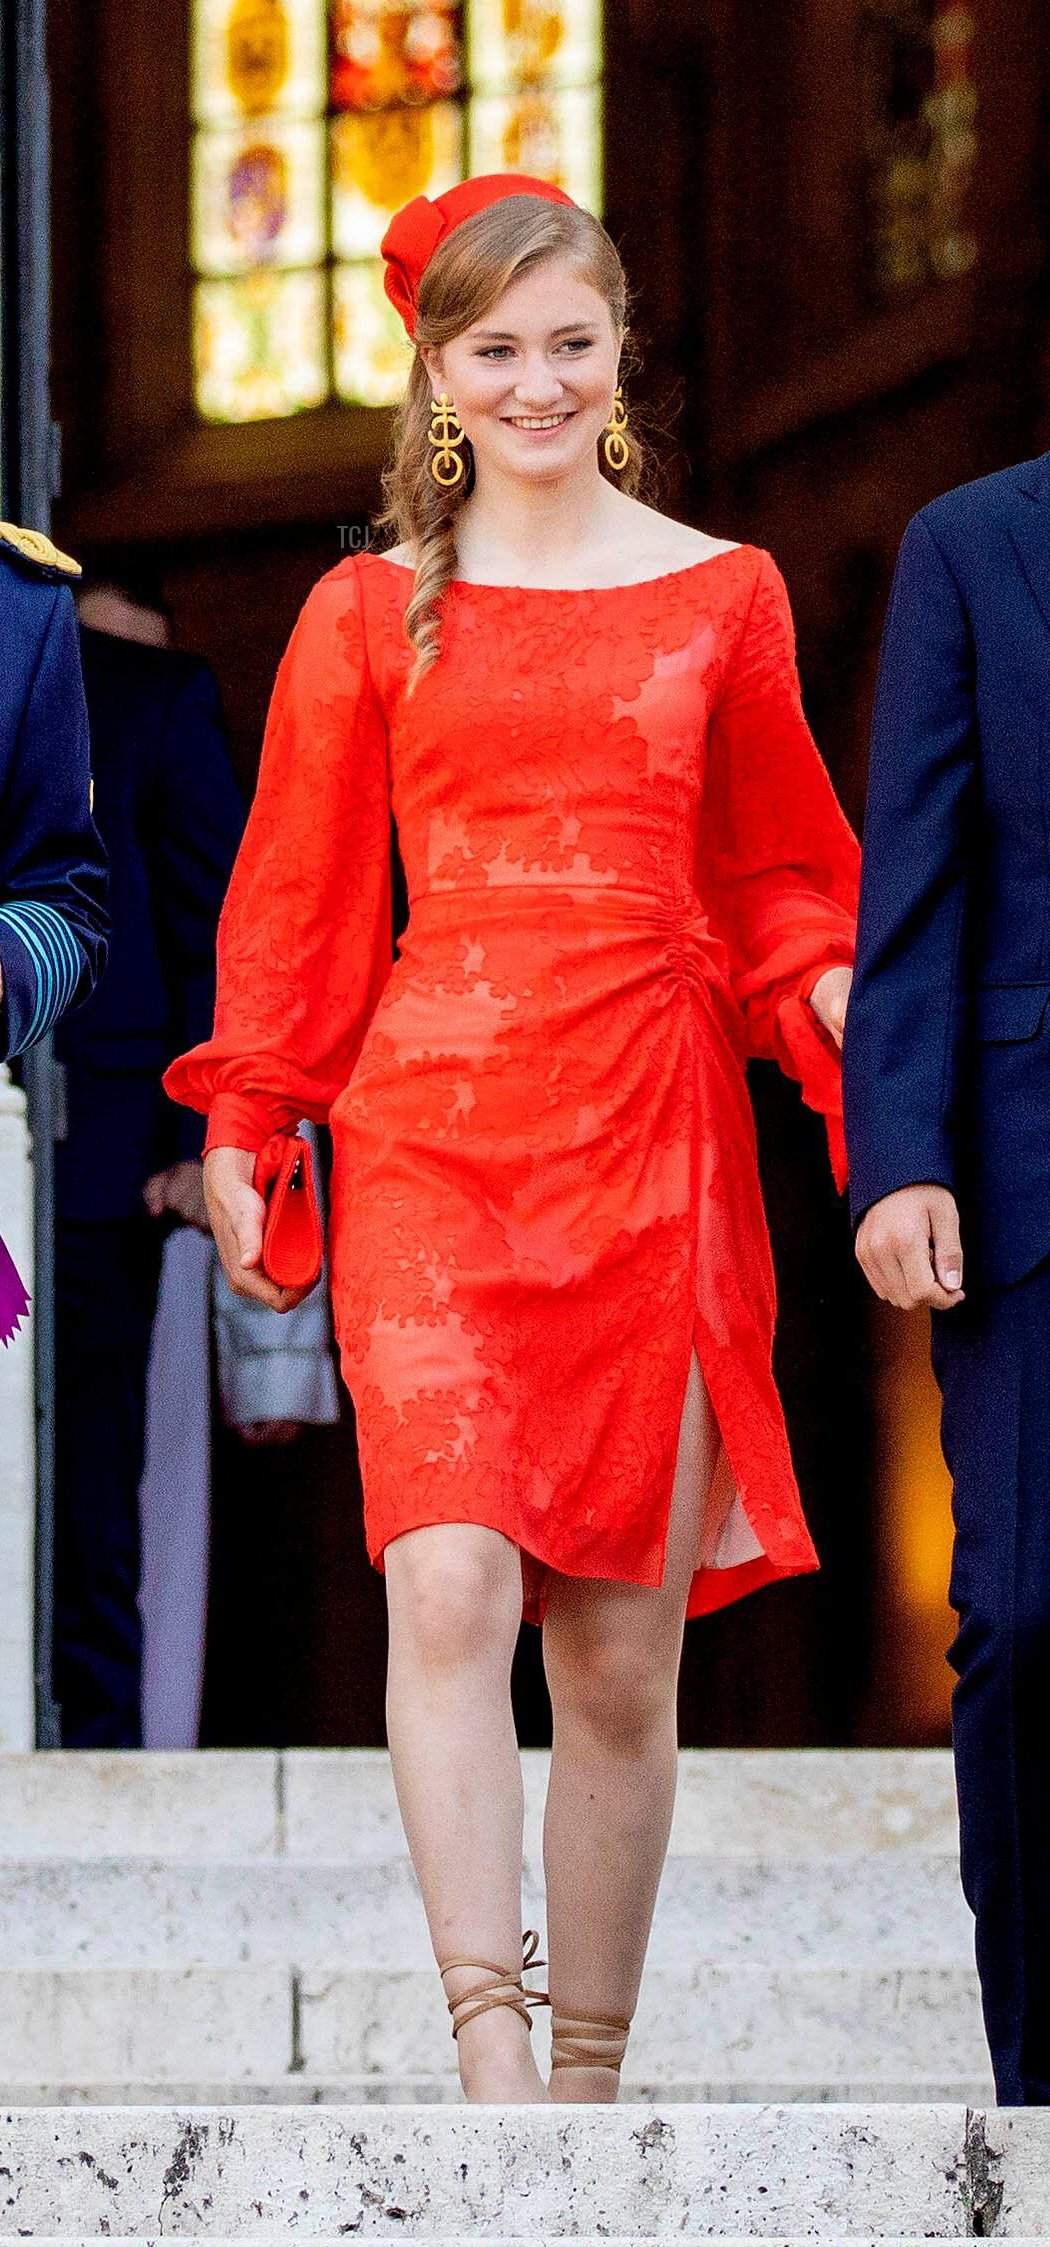 Princess Elisabeth, Duchess of Brabant departs the cathedral in Brussels on National Day, July 21, 2021